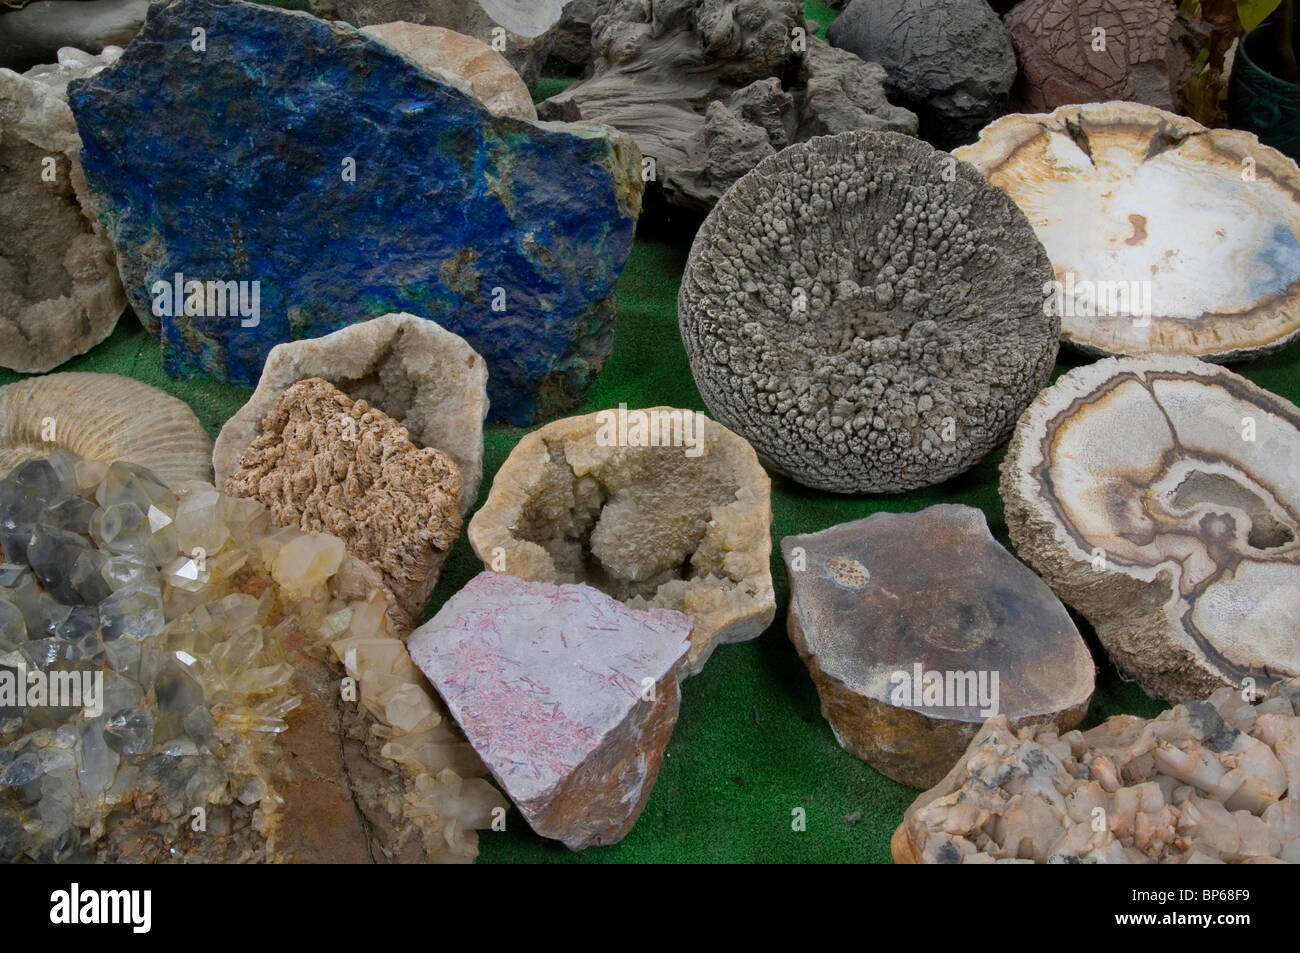 Geology specimens on display at Chapman's Gem & Mineral Shop & Museum - Stock Image